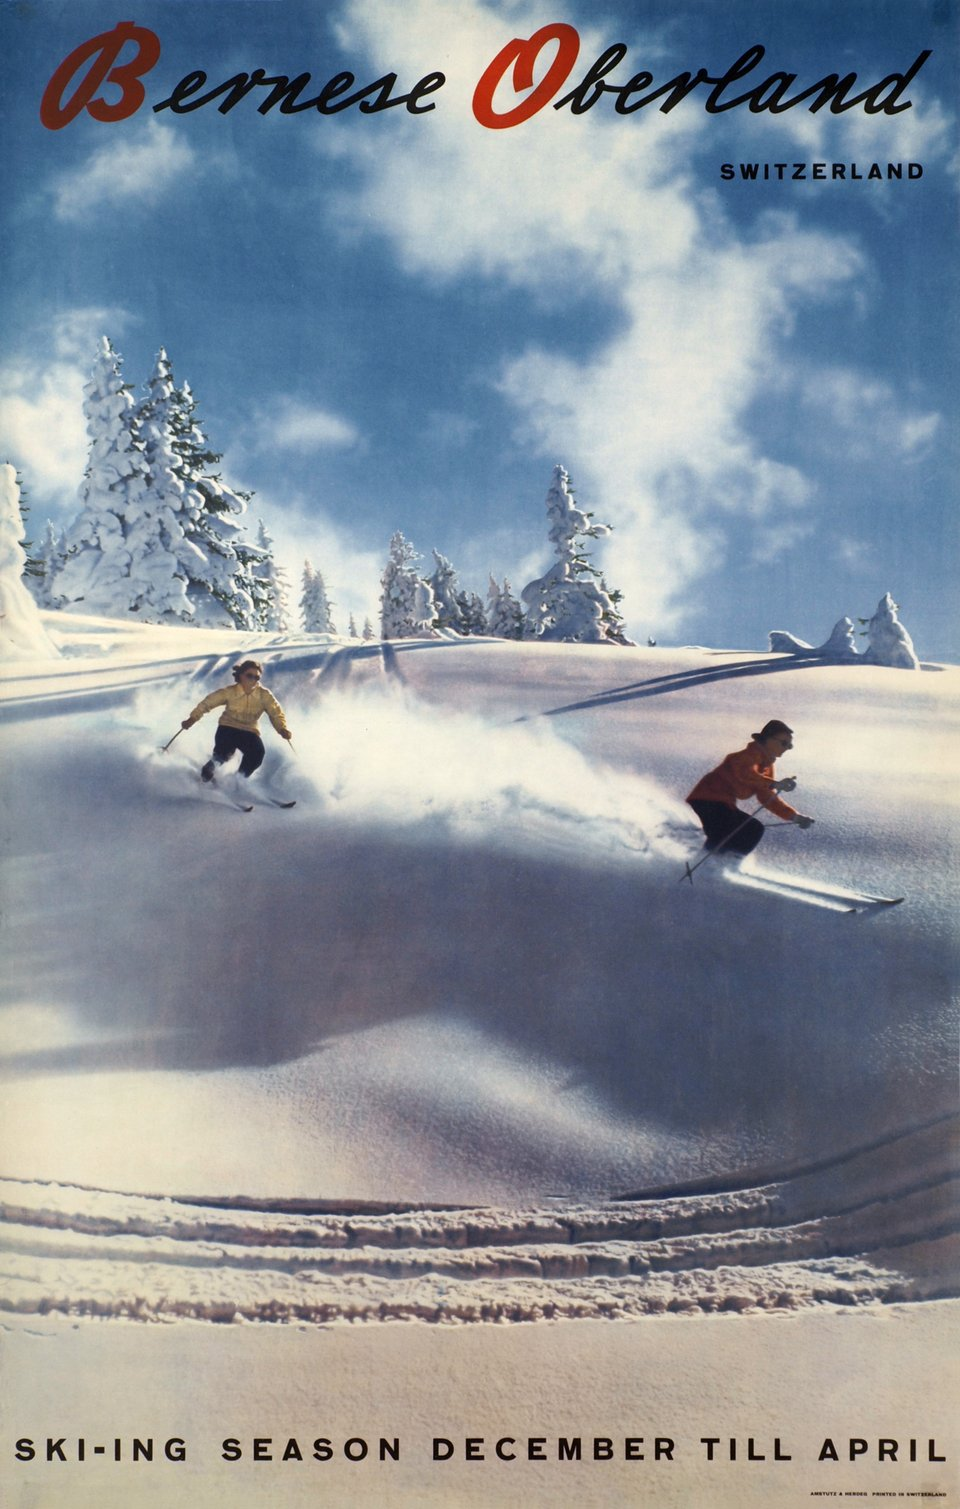 Bernese Oberland Switzerland, Skiing season December till April – Affiche ancienne – Walter HERDEG – 1944